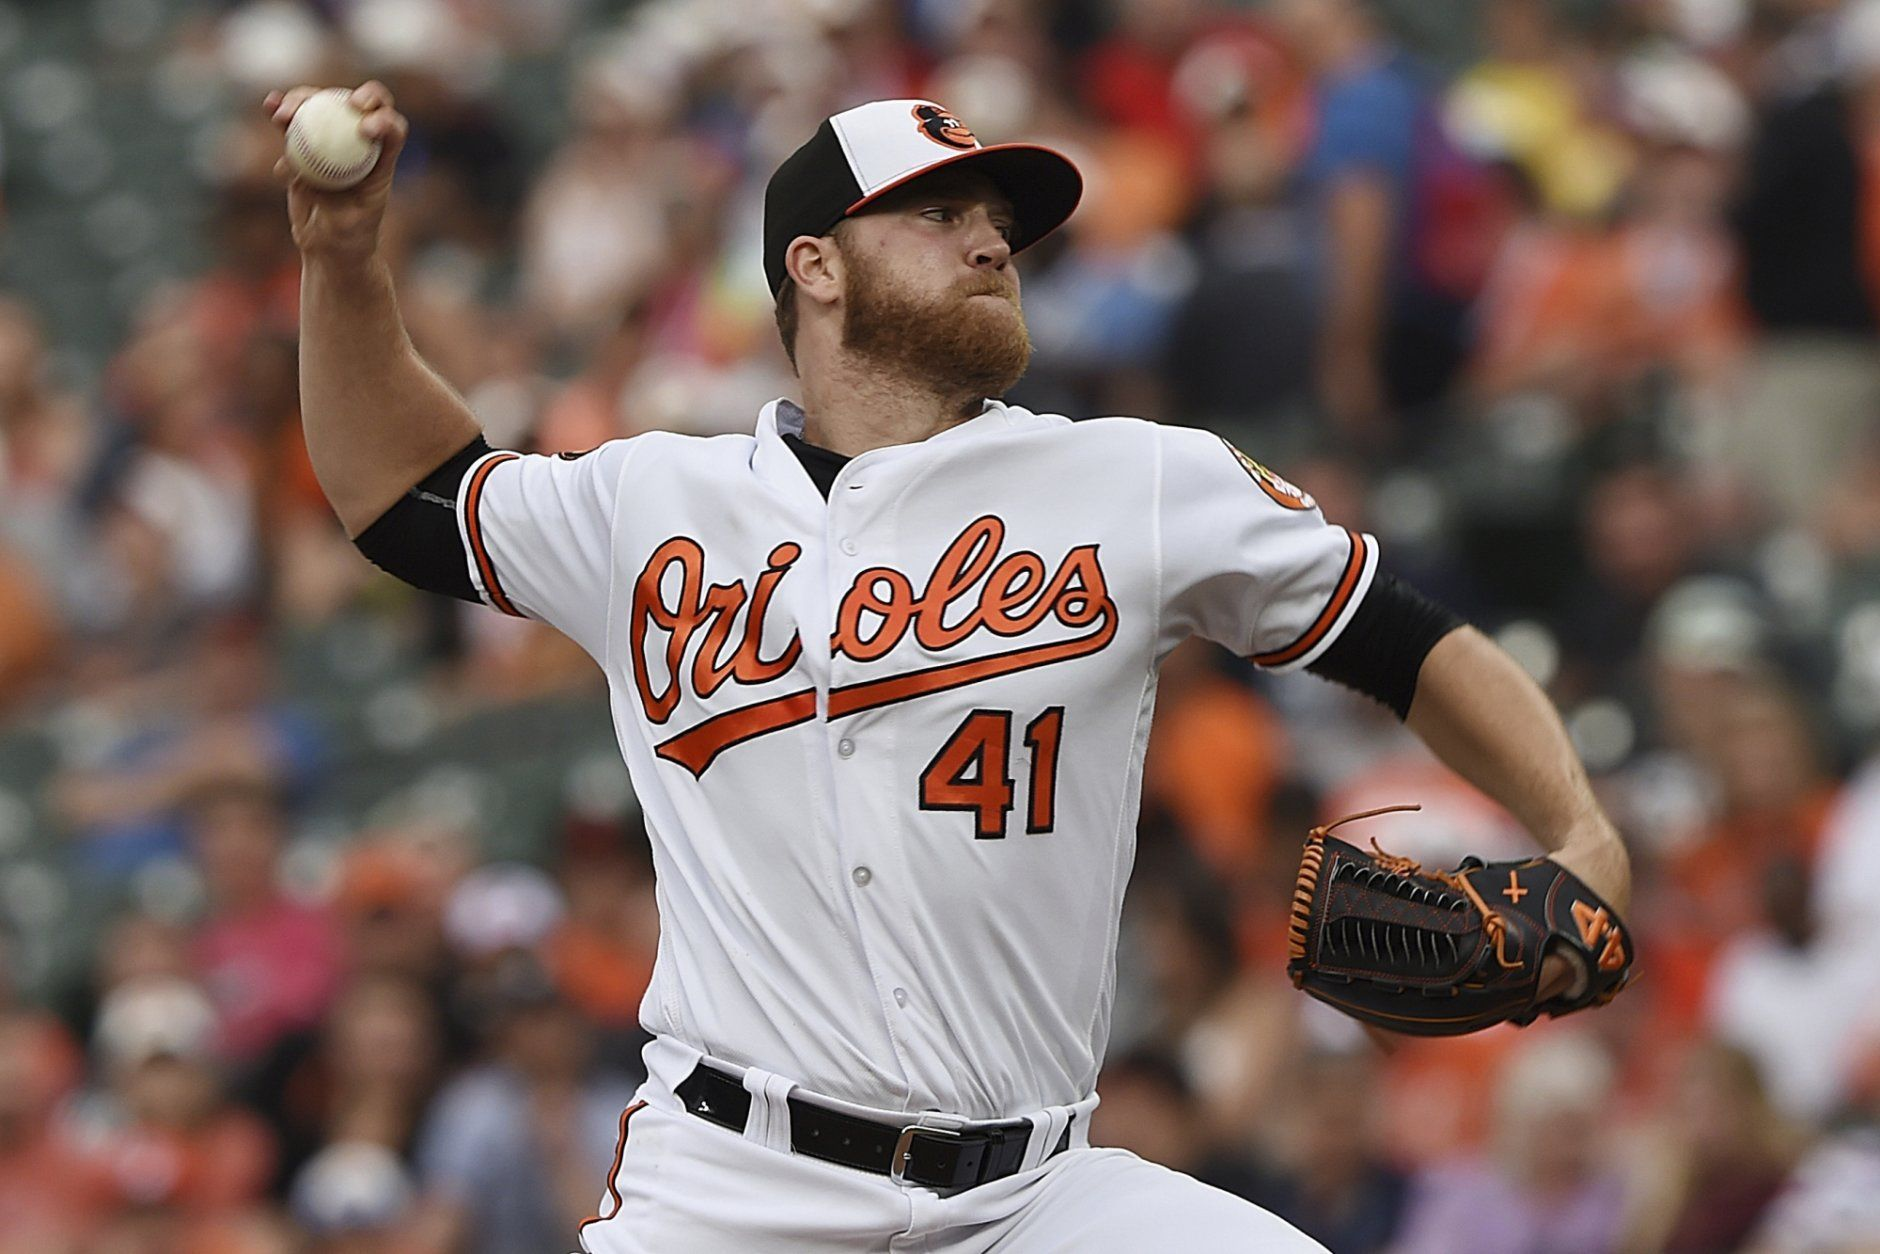 Baltimore Orioles pitcher David Hess throws to a Toronto Blue Jays batter during the first inning of a baseball game Wednesday, June 12, 2019, in Baltimore. (AP Photo/Gail Burton)